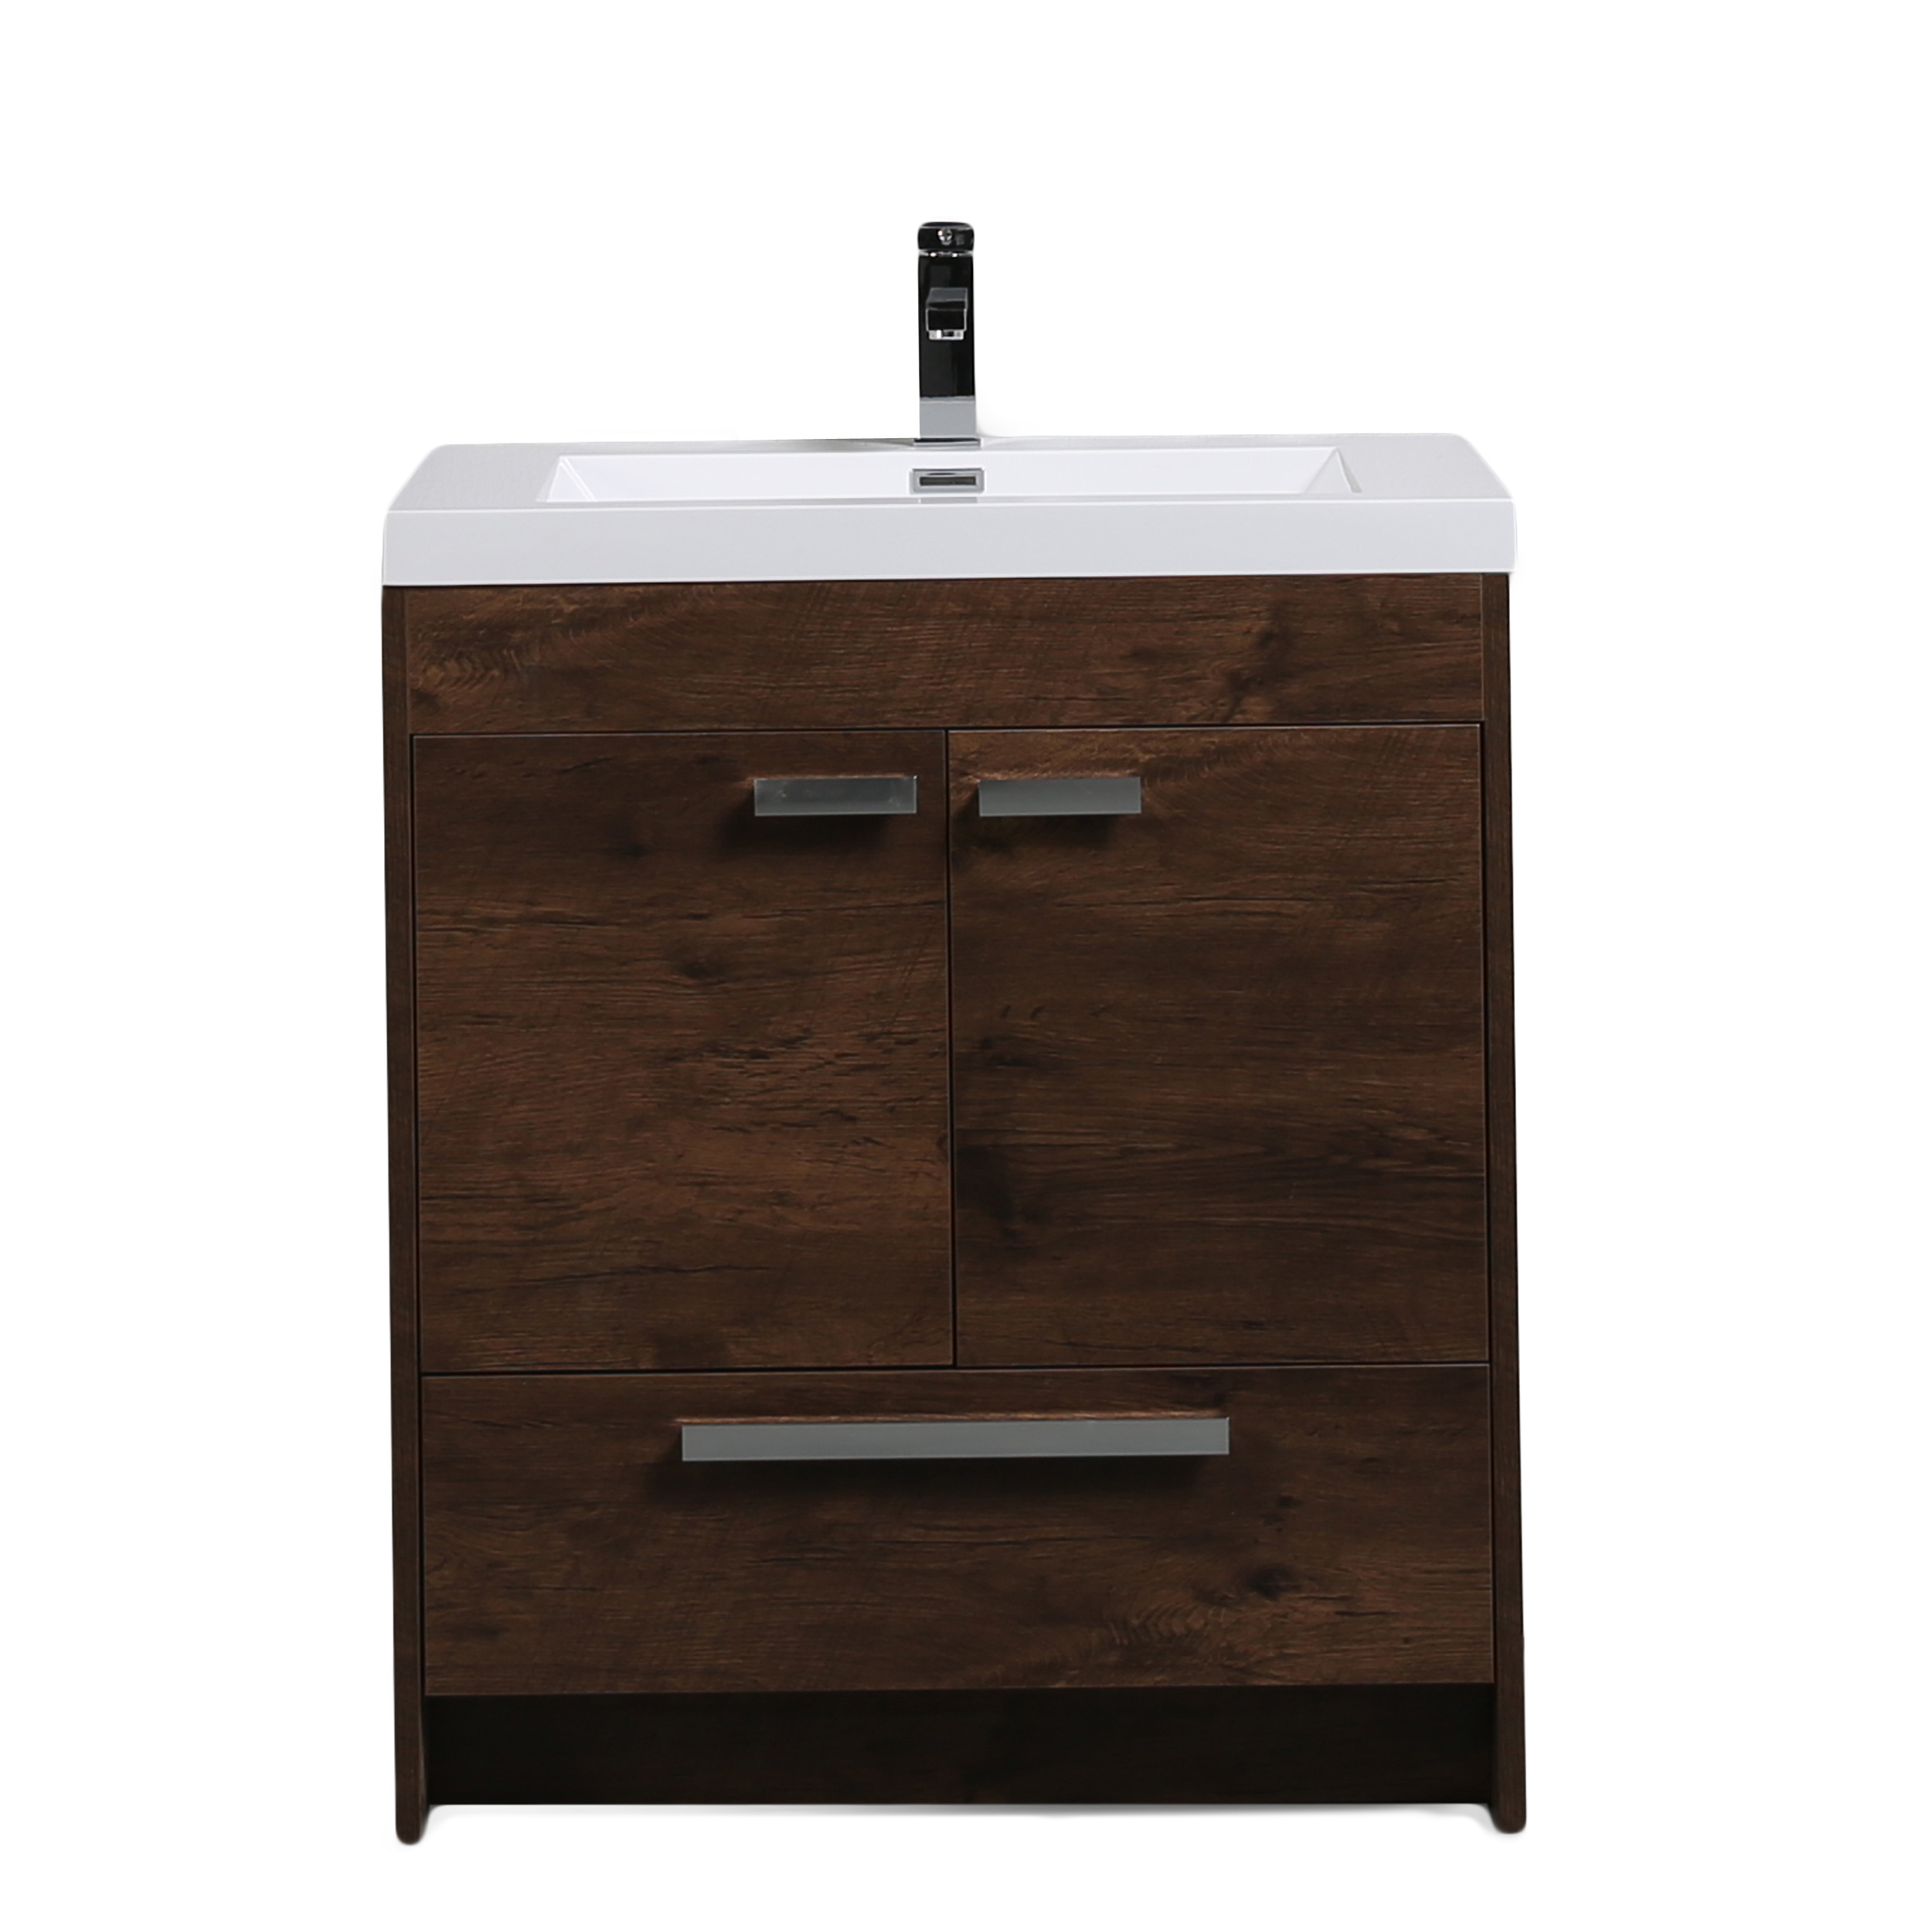 "EVVN750 3 30RSWD A Main - Eviva Lugano 30"" Rosewood Modern Bathroom Vanity with White Integrated Acrylic Sink"